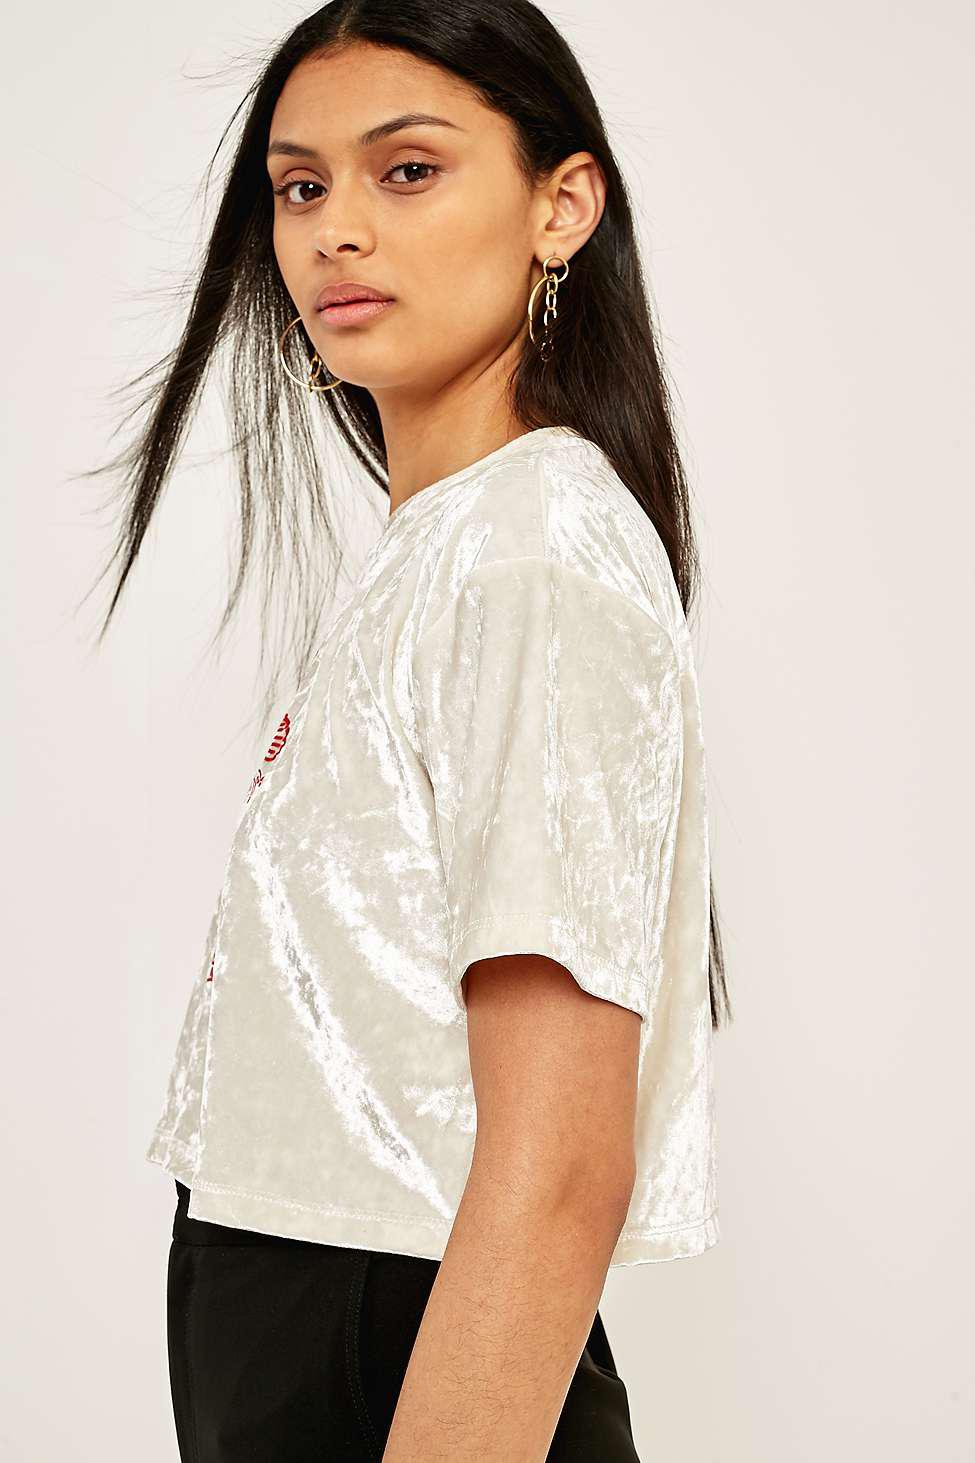 76a7843b Urban Outfitters Urban Outfitters Crushed Velvet Graphic T-shirt ...